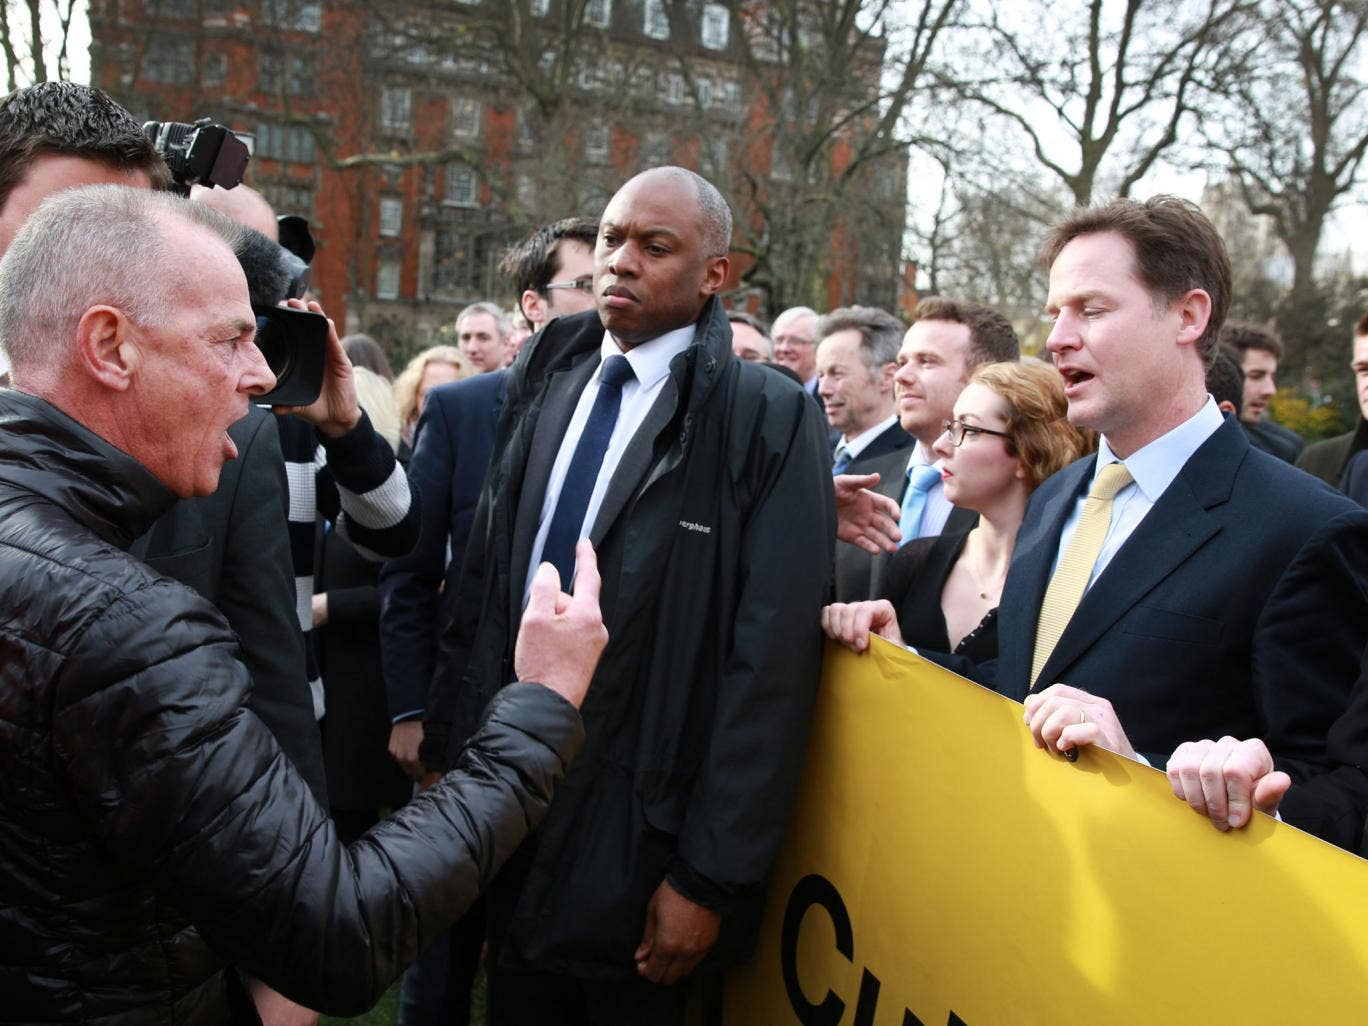 Protestor Bill Maloney (L) gestures as he shouts at Deputy Prime Minister Nick Clegg (R) who abandoned a photocall near Parliament to promote a tax cut announced in the budget on March 19, 2014 in London, England. The Chancellor of the Exchequer, George O